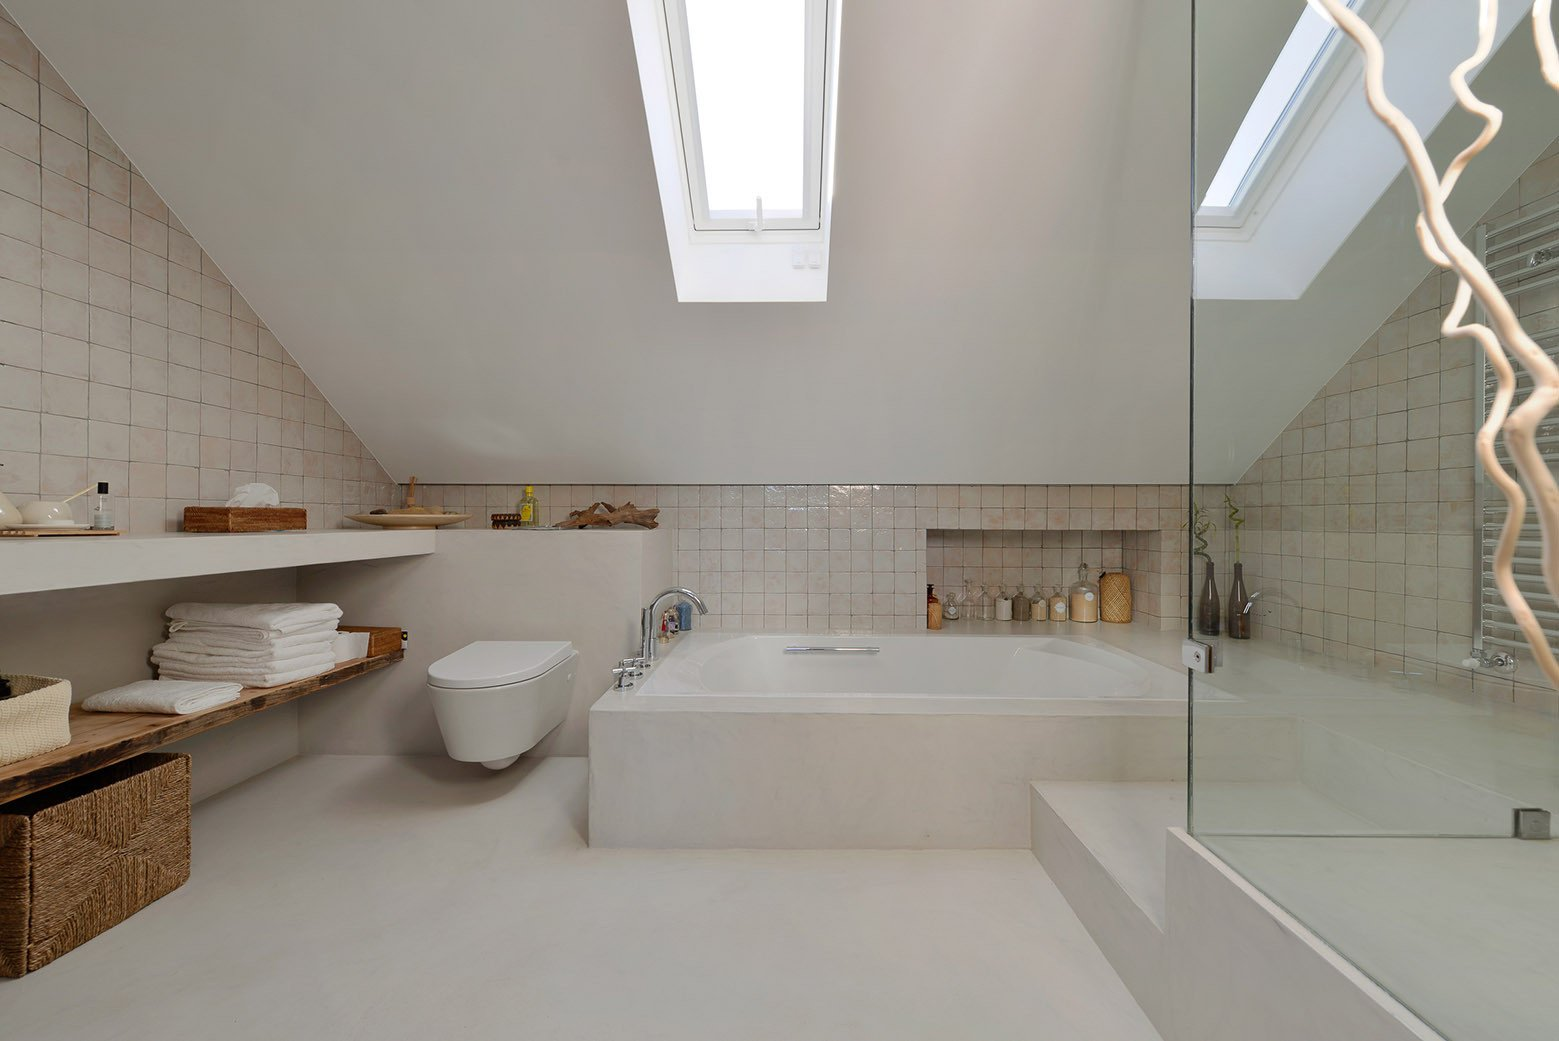 Bath Room, Concrete Floor, Drop In Tub, Ceramic Tile Wall, and One Piece Toilet  Best Photos from An Architect Renovates His 1920s Home in Portugal, While Preserving the Exterior Shell